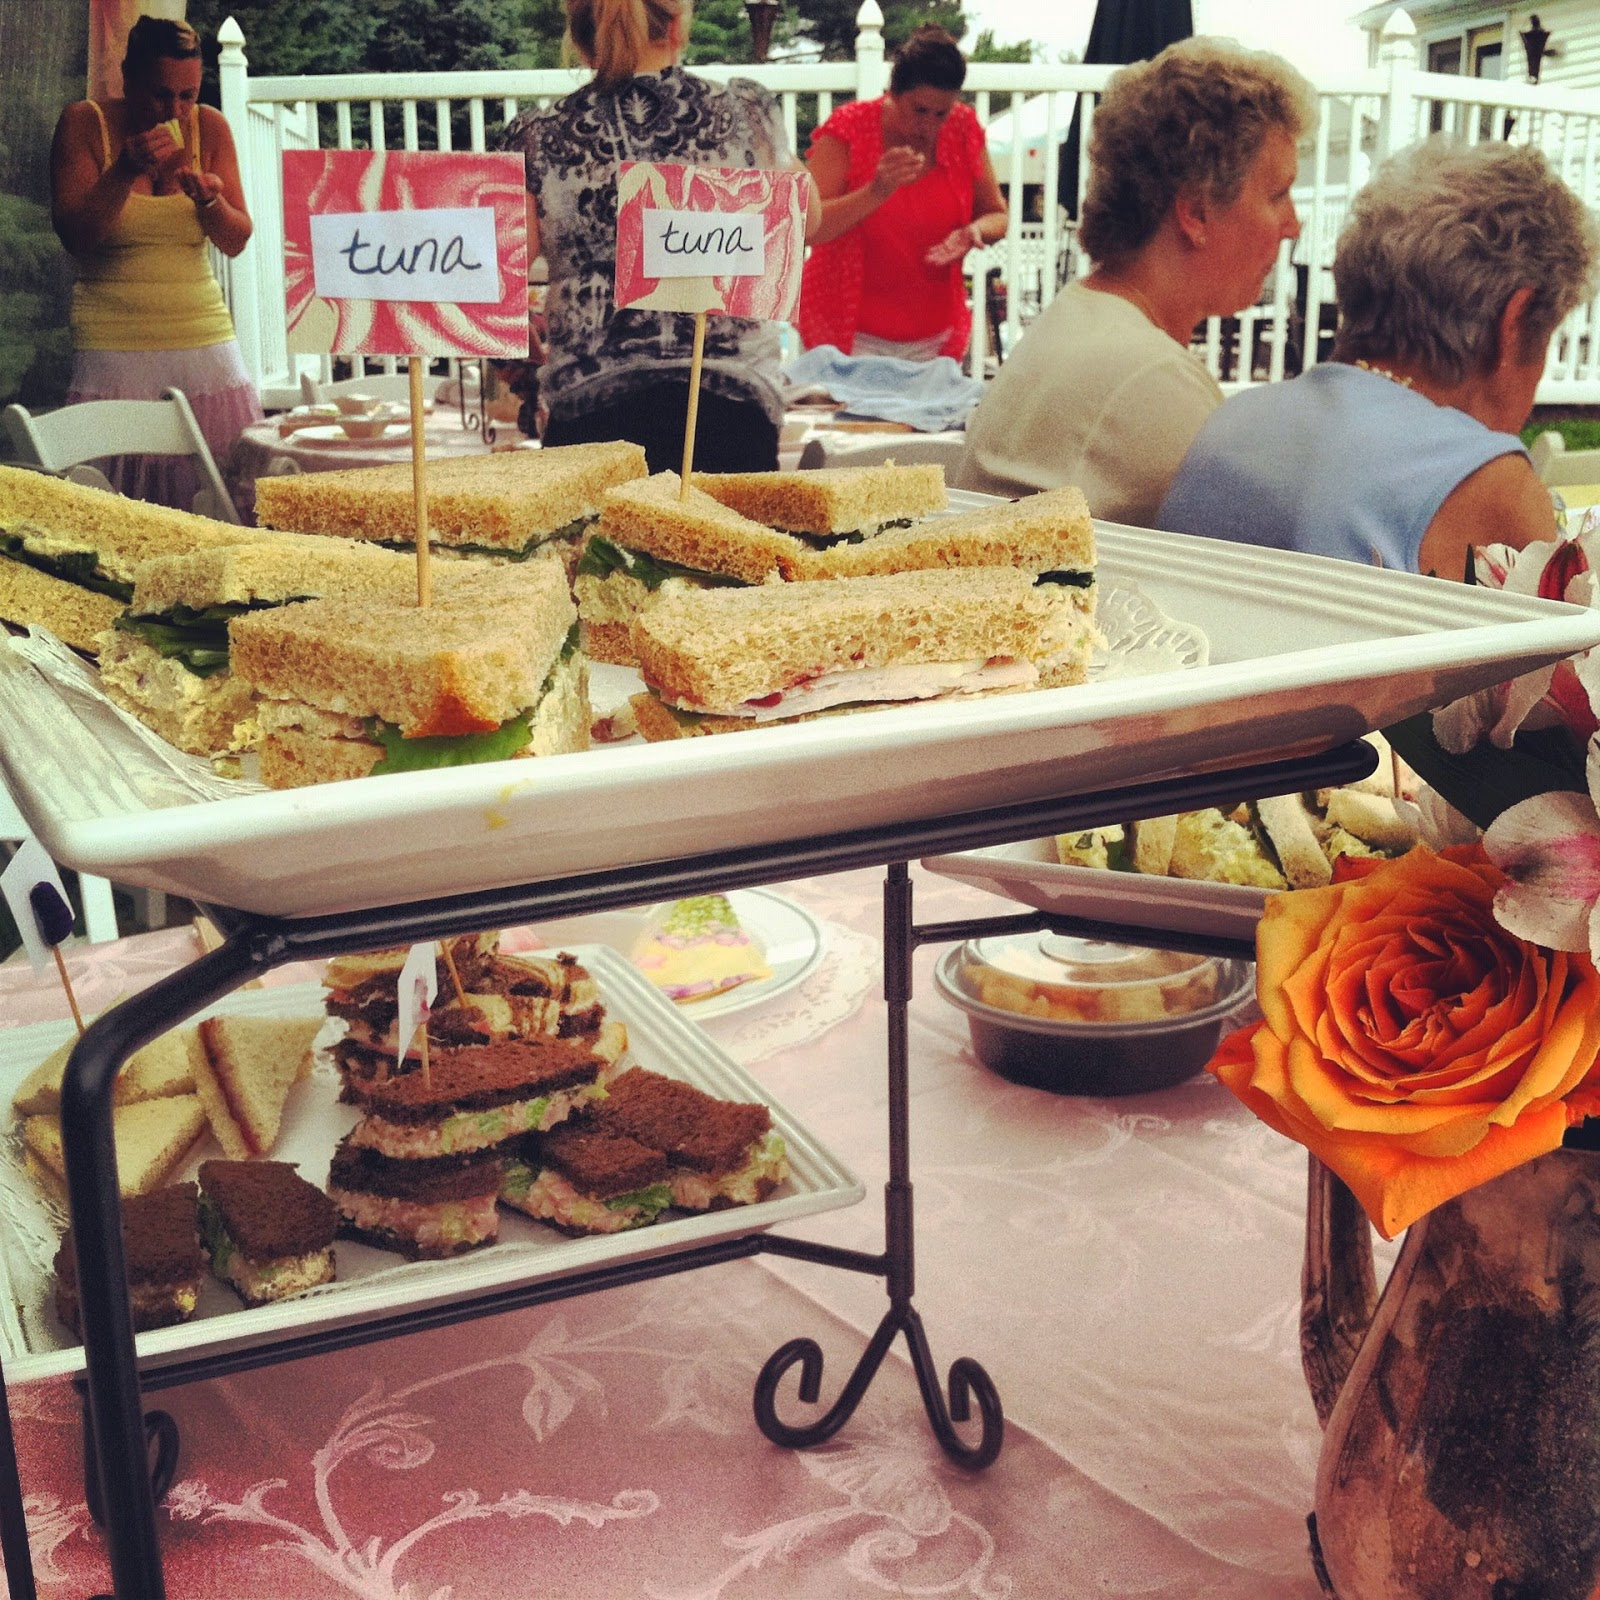 tea sandwiches with little labels served on tiered trays for an afternoon lunch